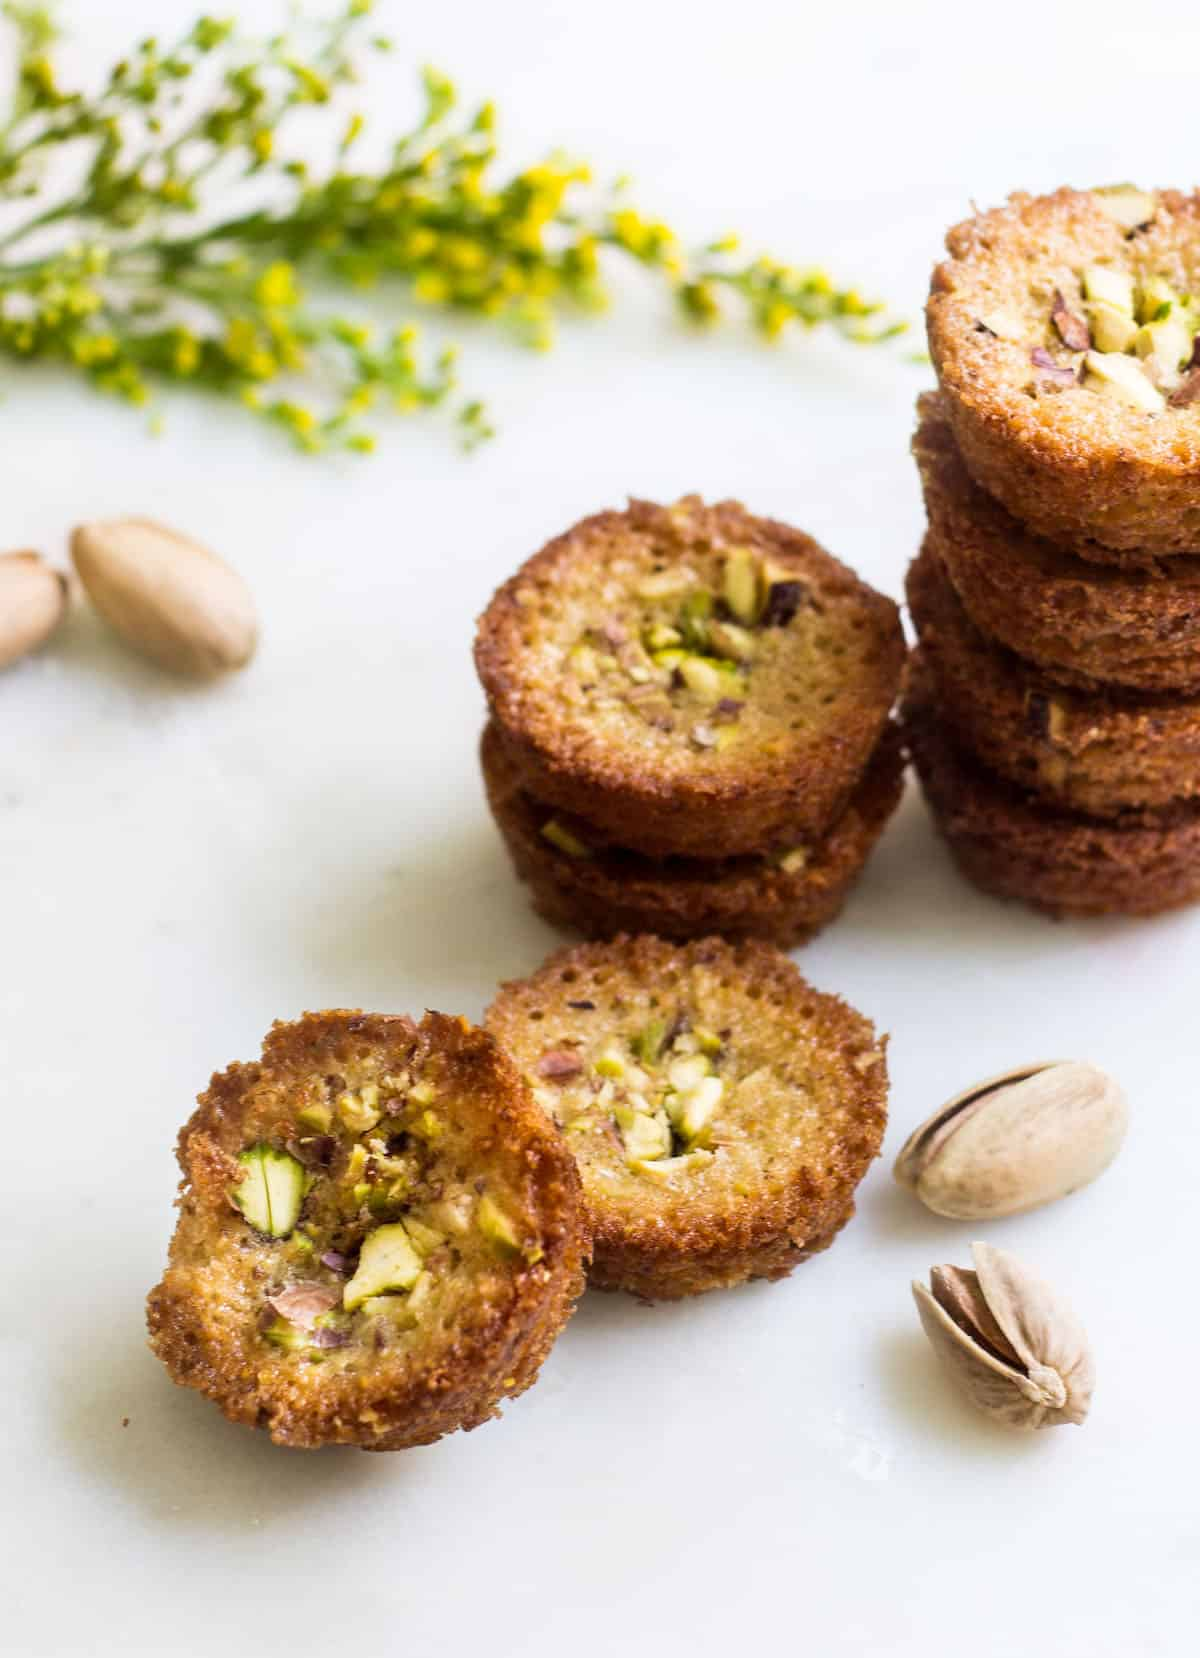 Pistachio Financiers: little almond French cakes flavored with pistachios and brown butter. Recipe via MonPetitFour.com